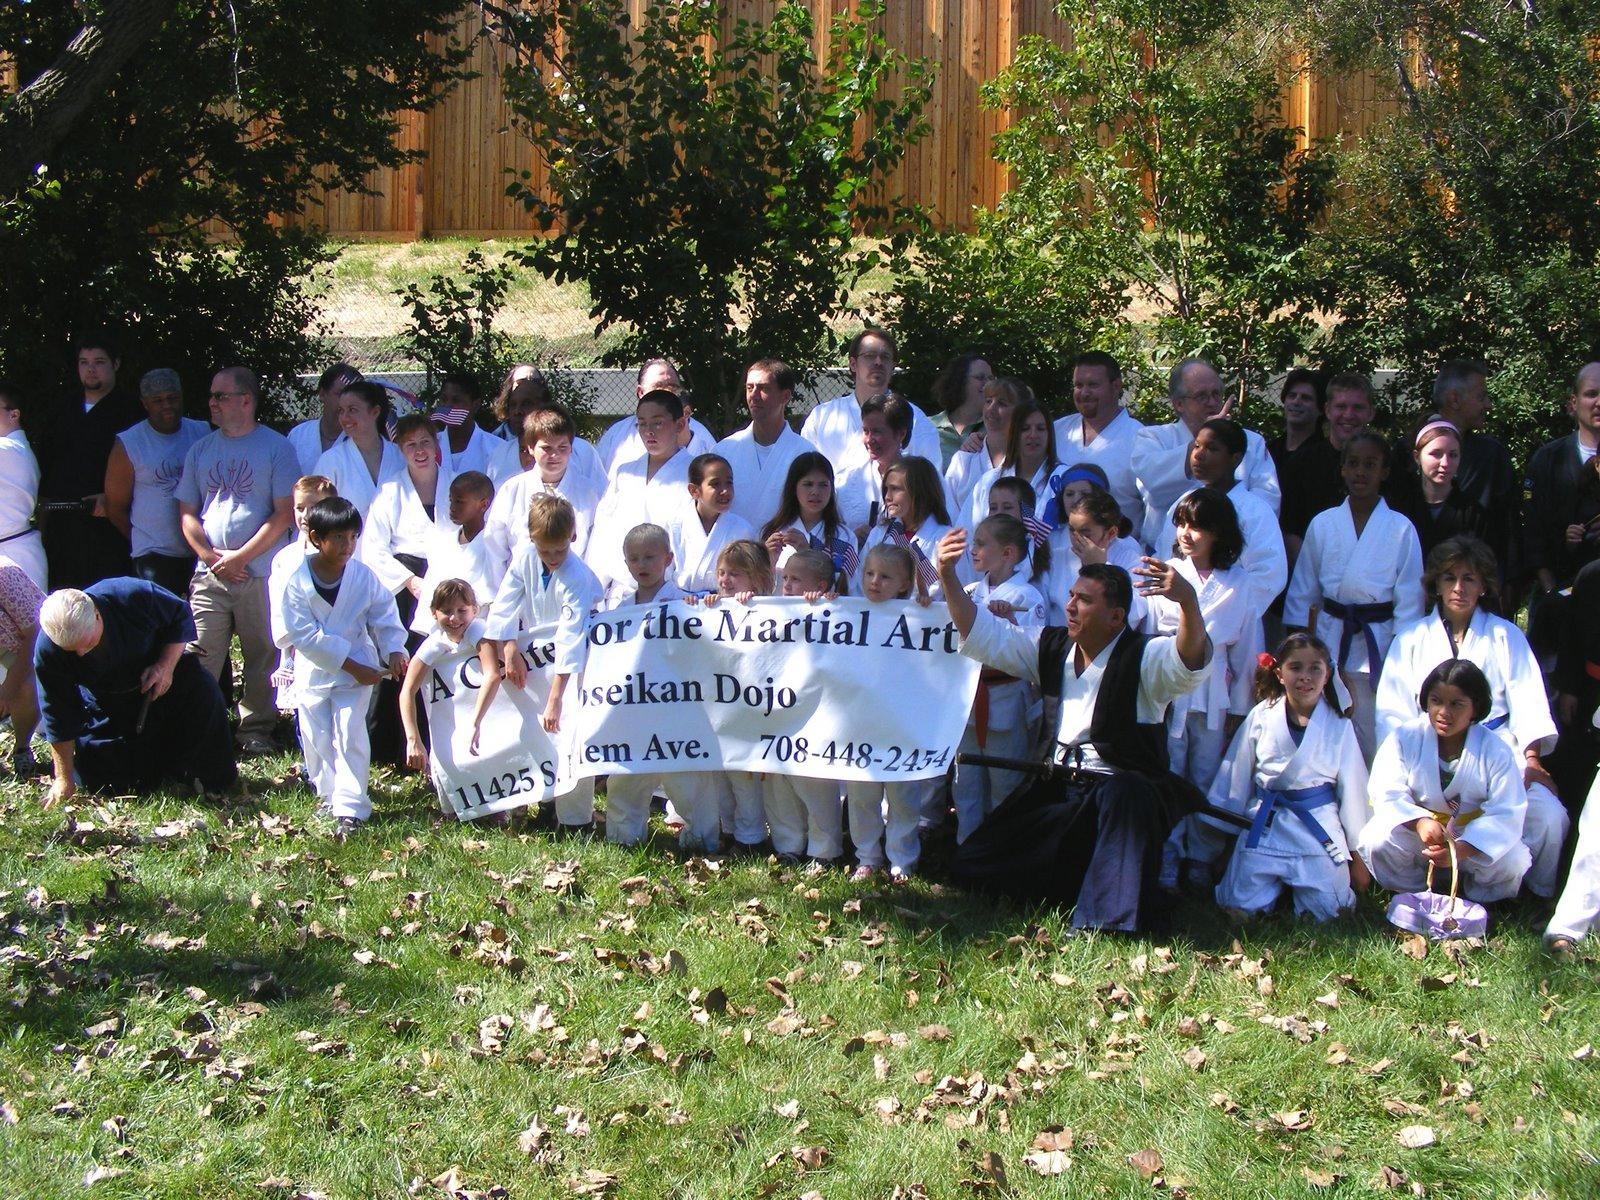 On September 11th, 12th and 13th, A Center For The Martial Arts participated in the Worth Days Parade and martial arts demonstrations